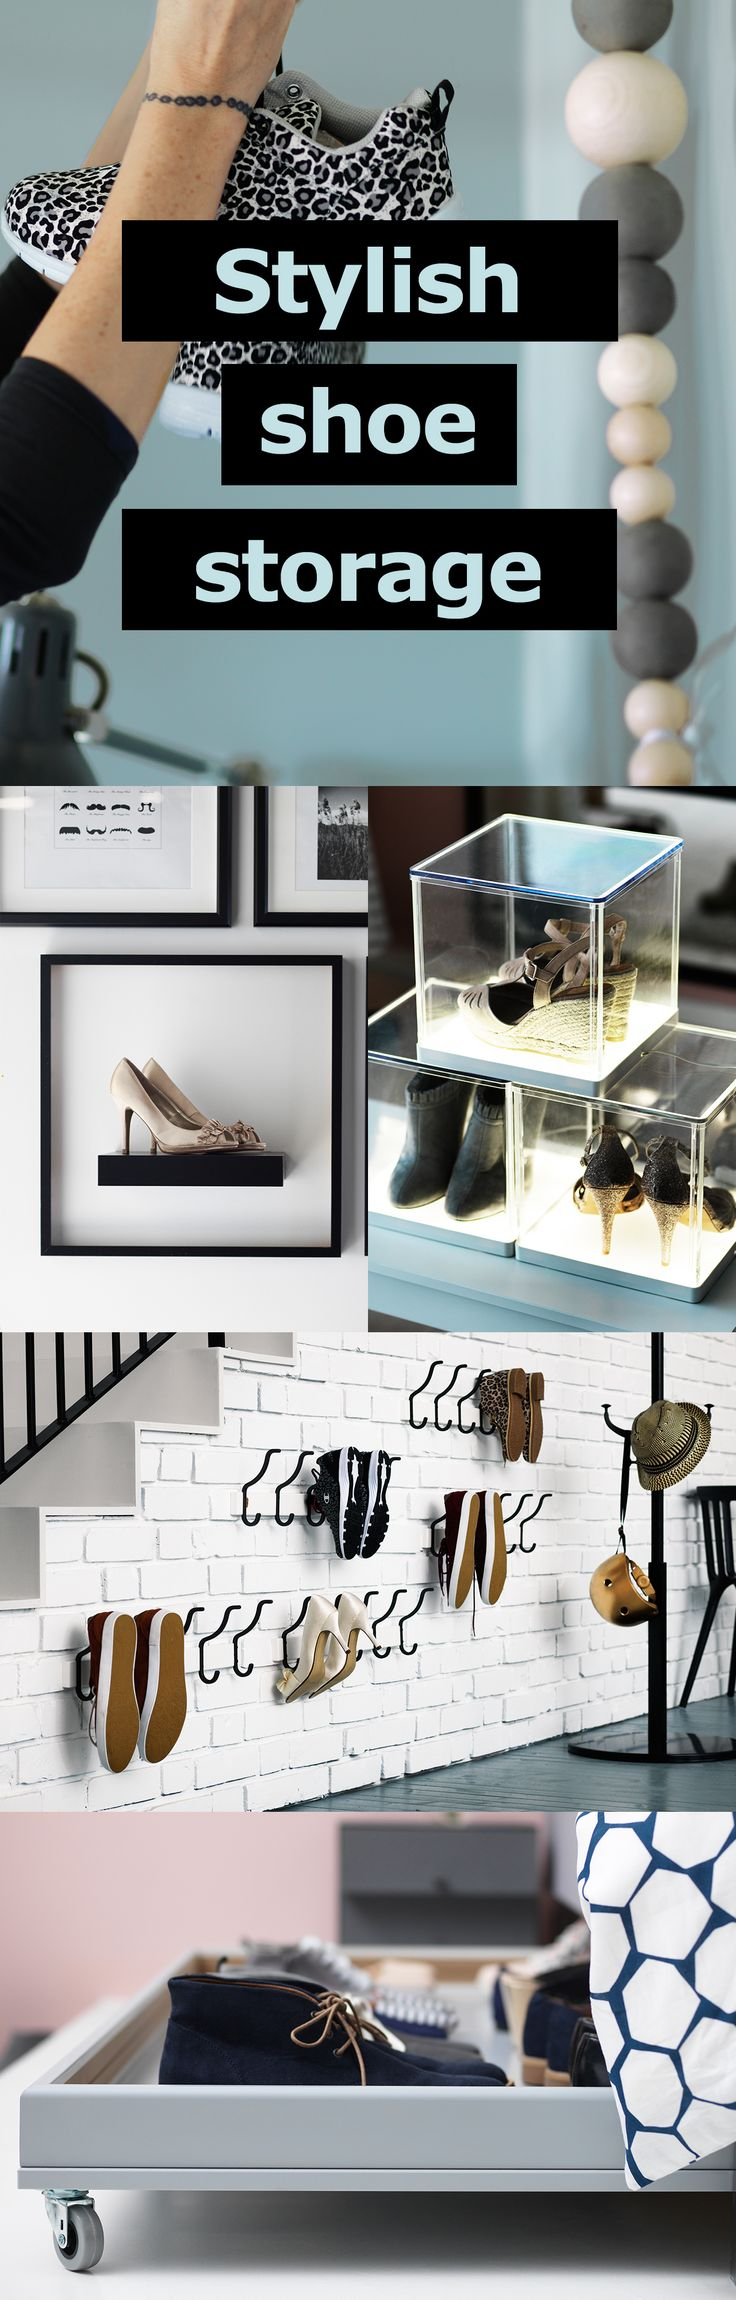 Getting caught in a shoe-avalanche everytime you open the wardrobe? We've thought up some creative ways to store them with style. 1. Hang 'em up, street-style. 2. Rather tuck your kicks away? Create some under bed shoe storage using any kind of flat board. 3. Display your favourite pairs alongside the rest of your wall art. 4. Don't limit your shoe collection to your floor space. We all have walls, so why not use that space instead? 5. Give your shoes pride of place in a display case.